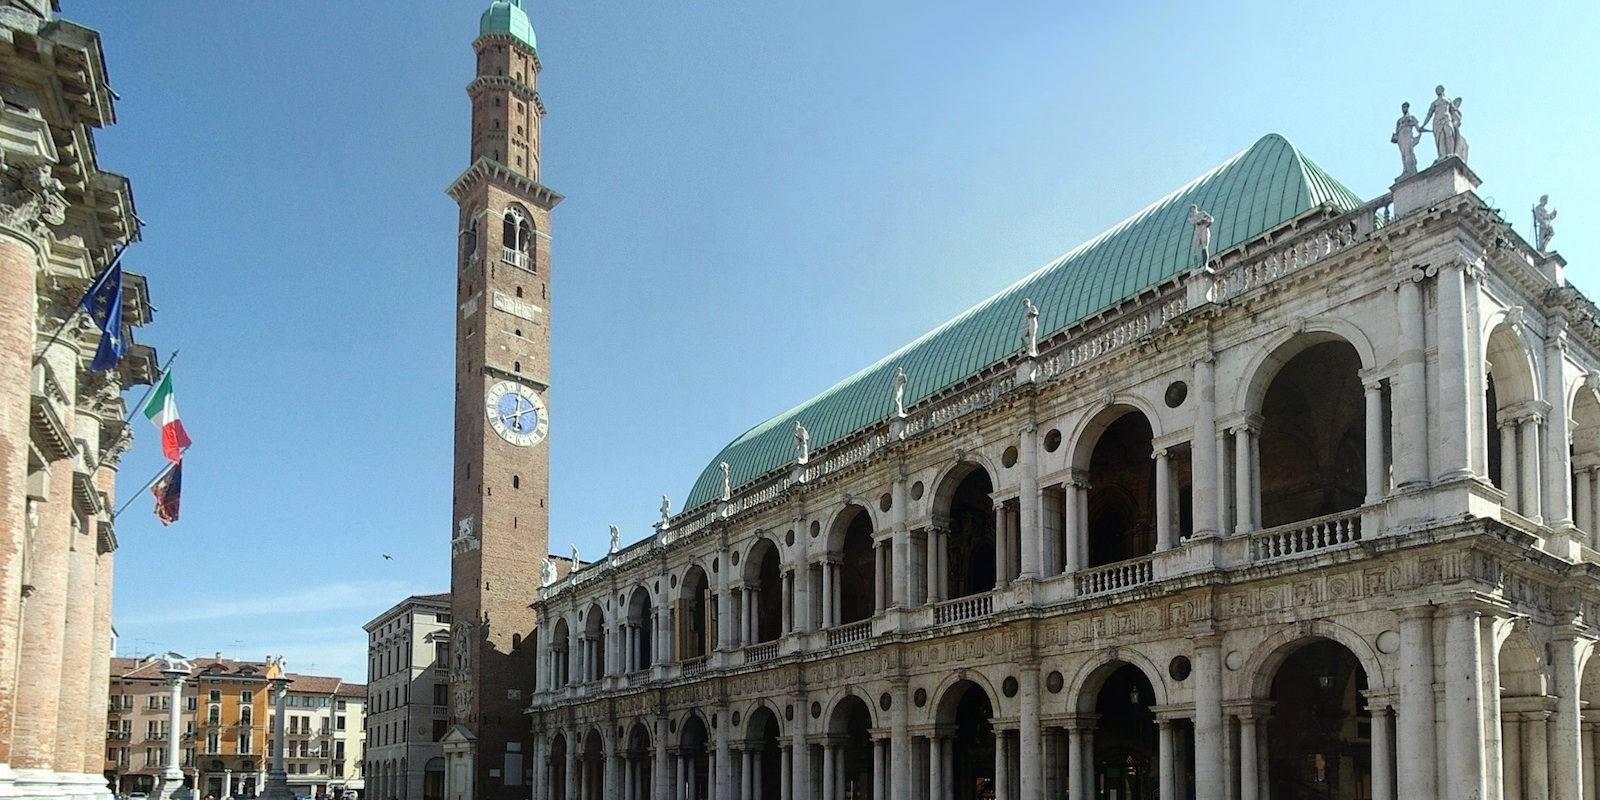 Vicenza's guide